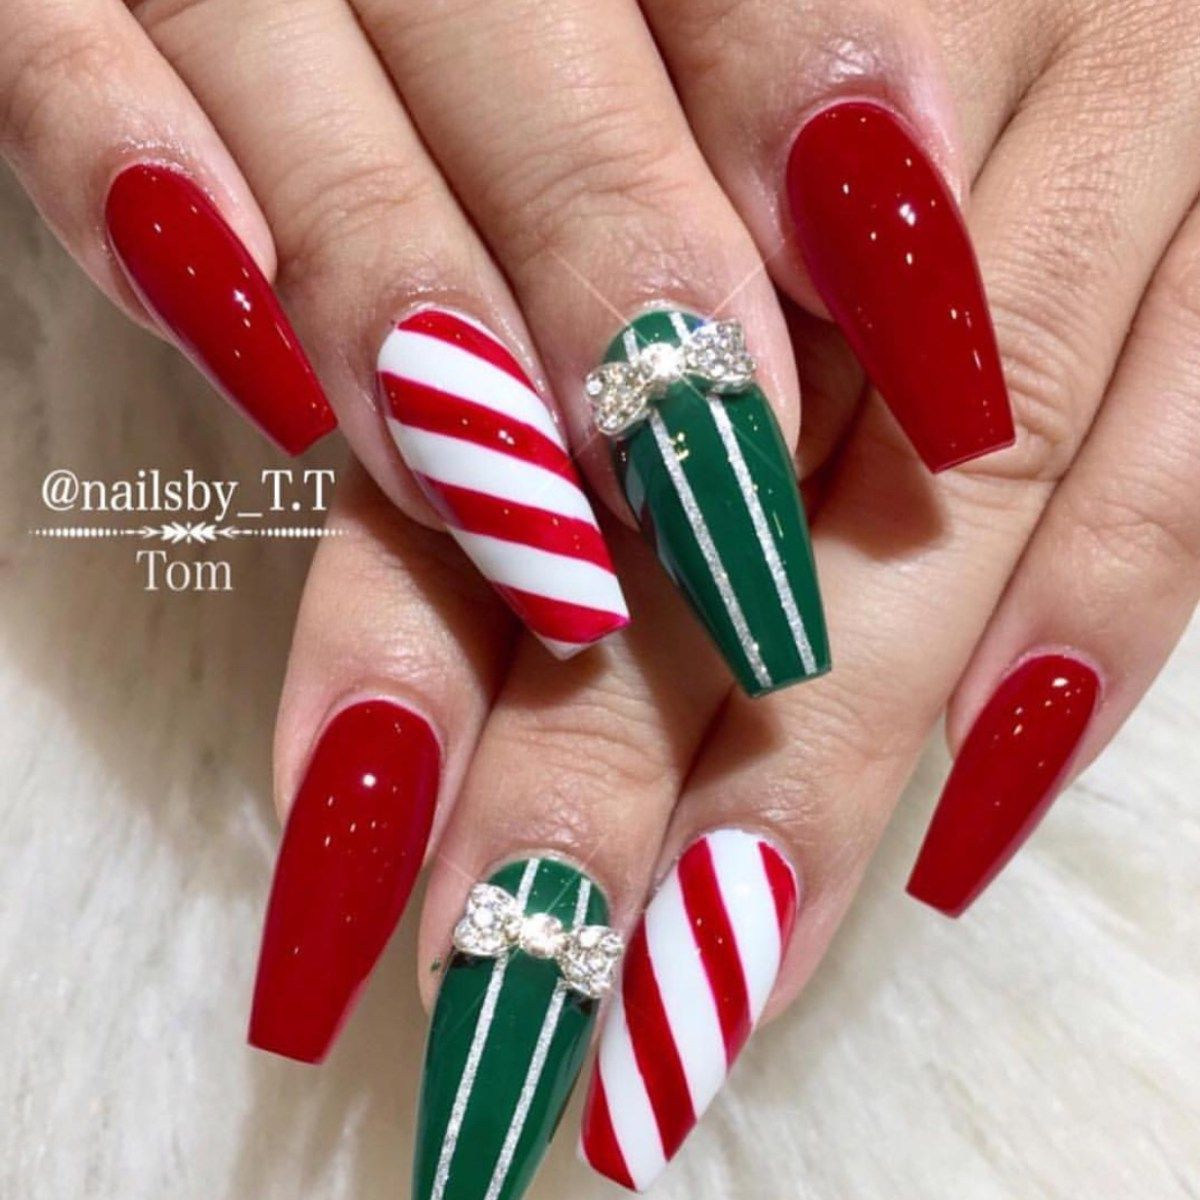 27 Holiday Nail Designs \u0026 Acrylic Nails for Winter